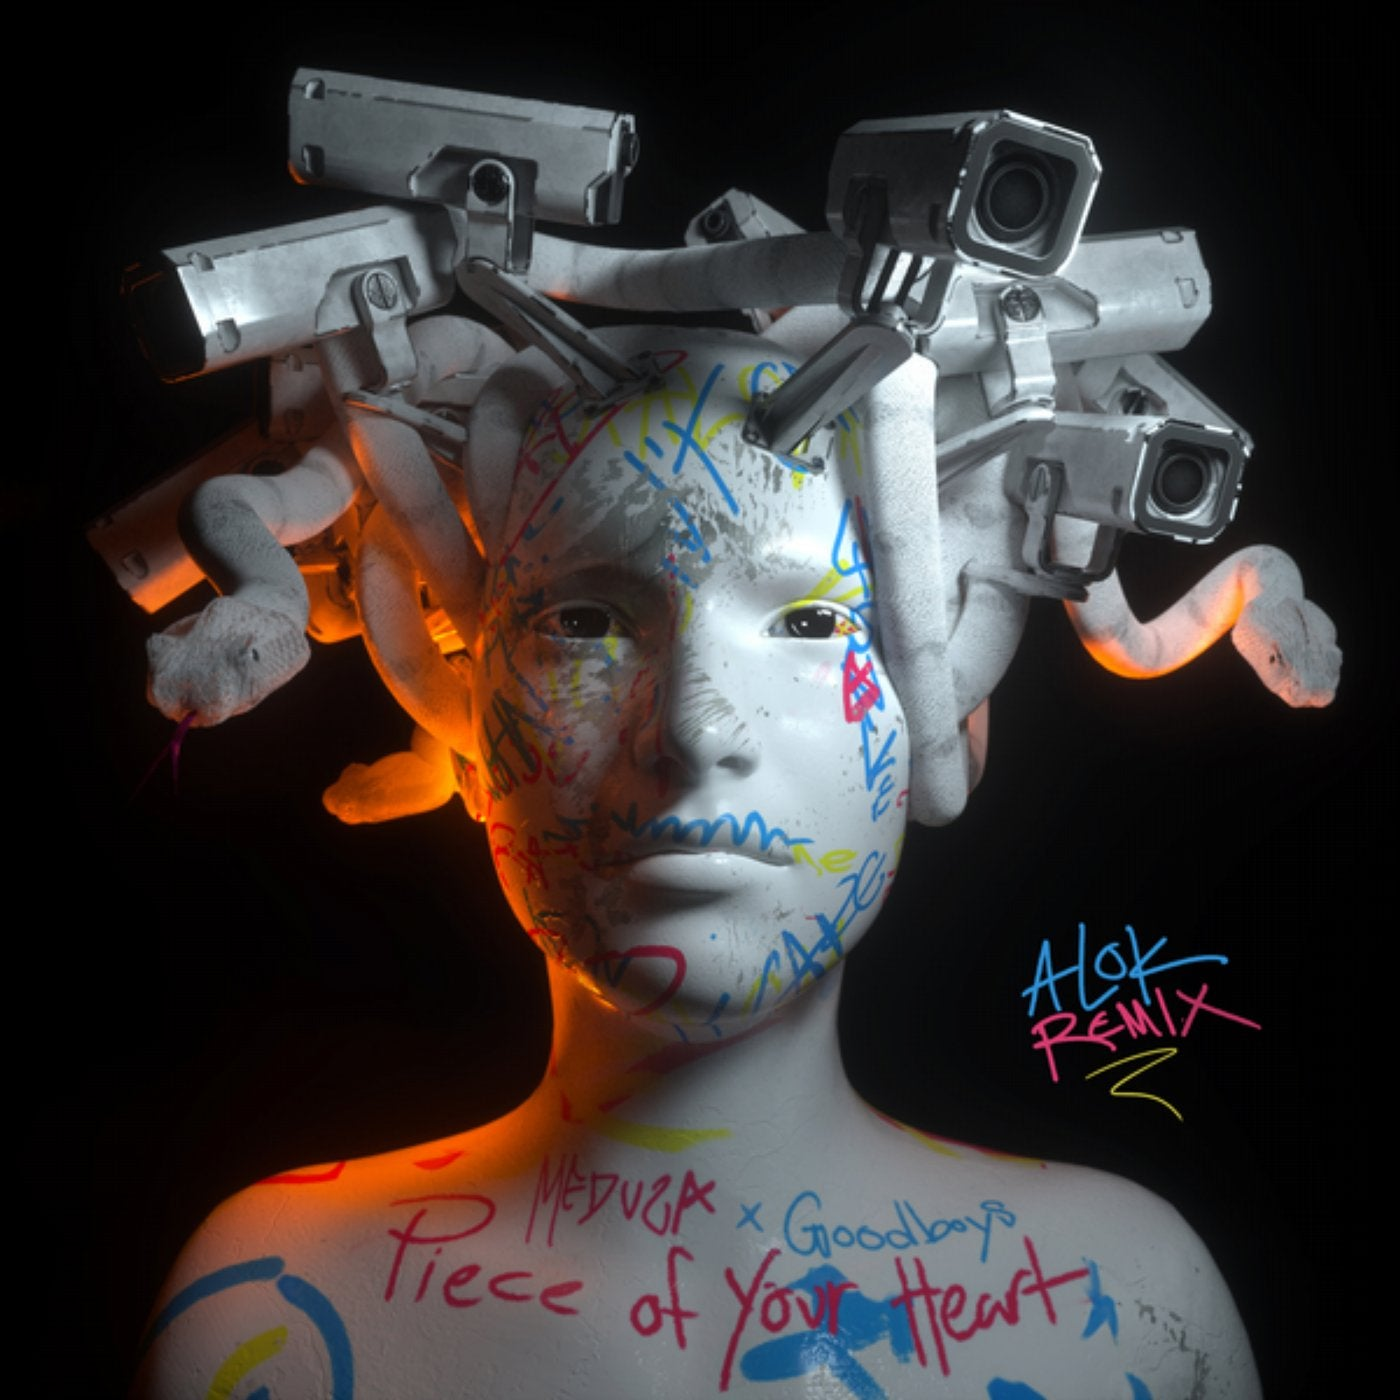 Piece Of Your Heart (Alok Extended Remix)